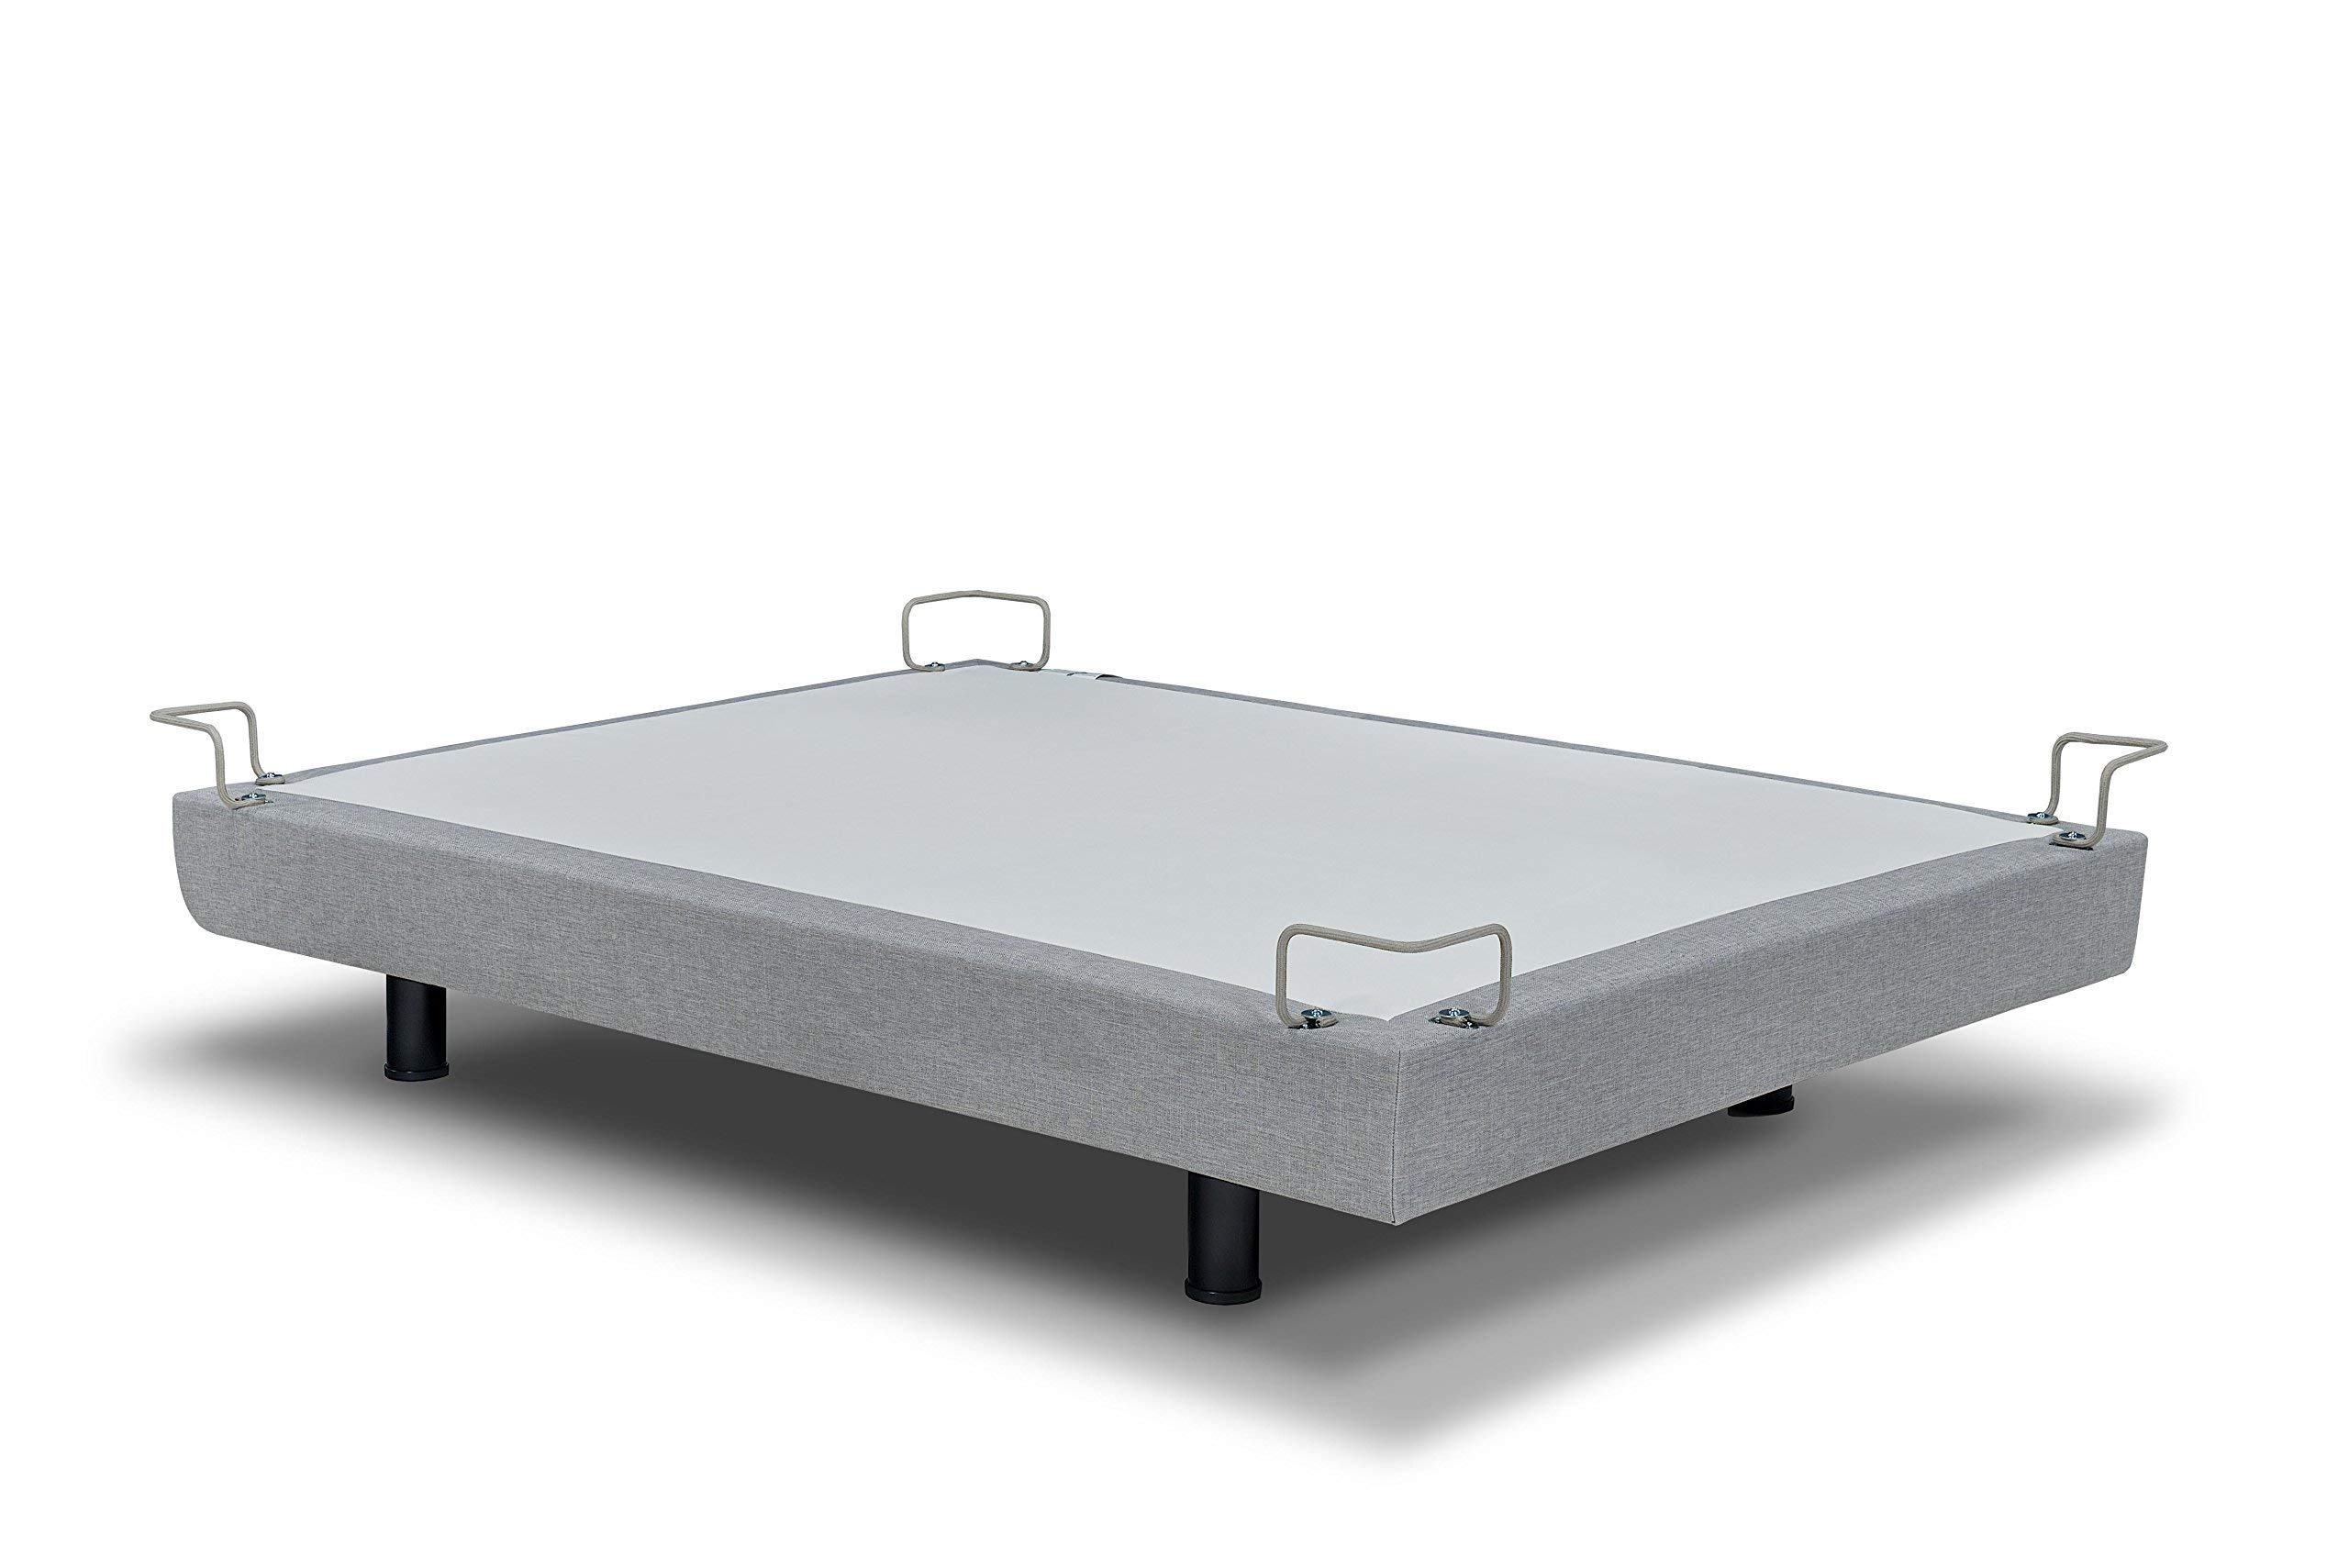 Reverie REV-5D-QN 5D Adjustable Bed Base with Wireless Massage Wall Snuggler Zero Gravity, Queen